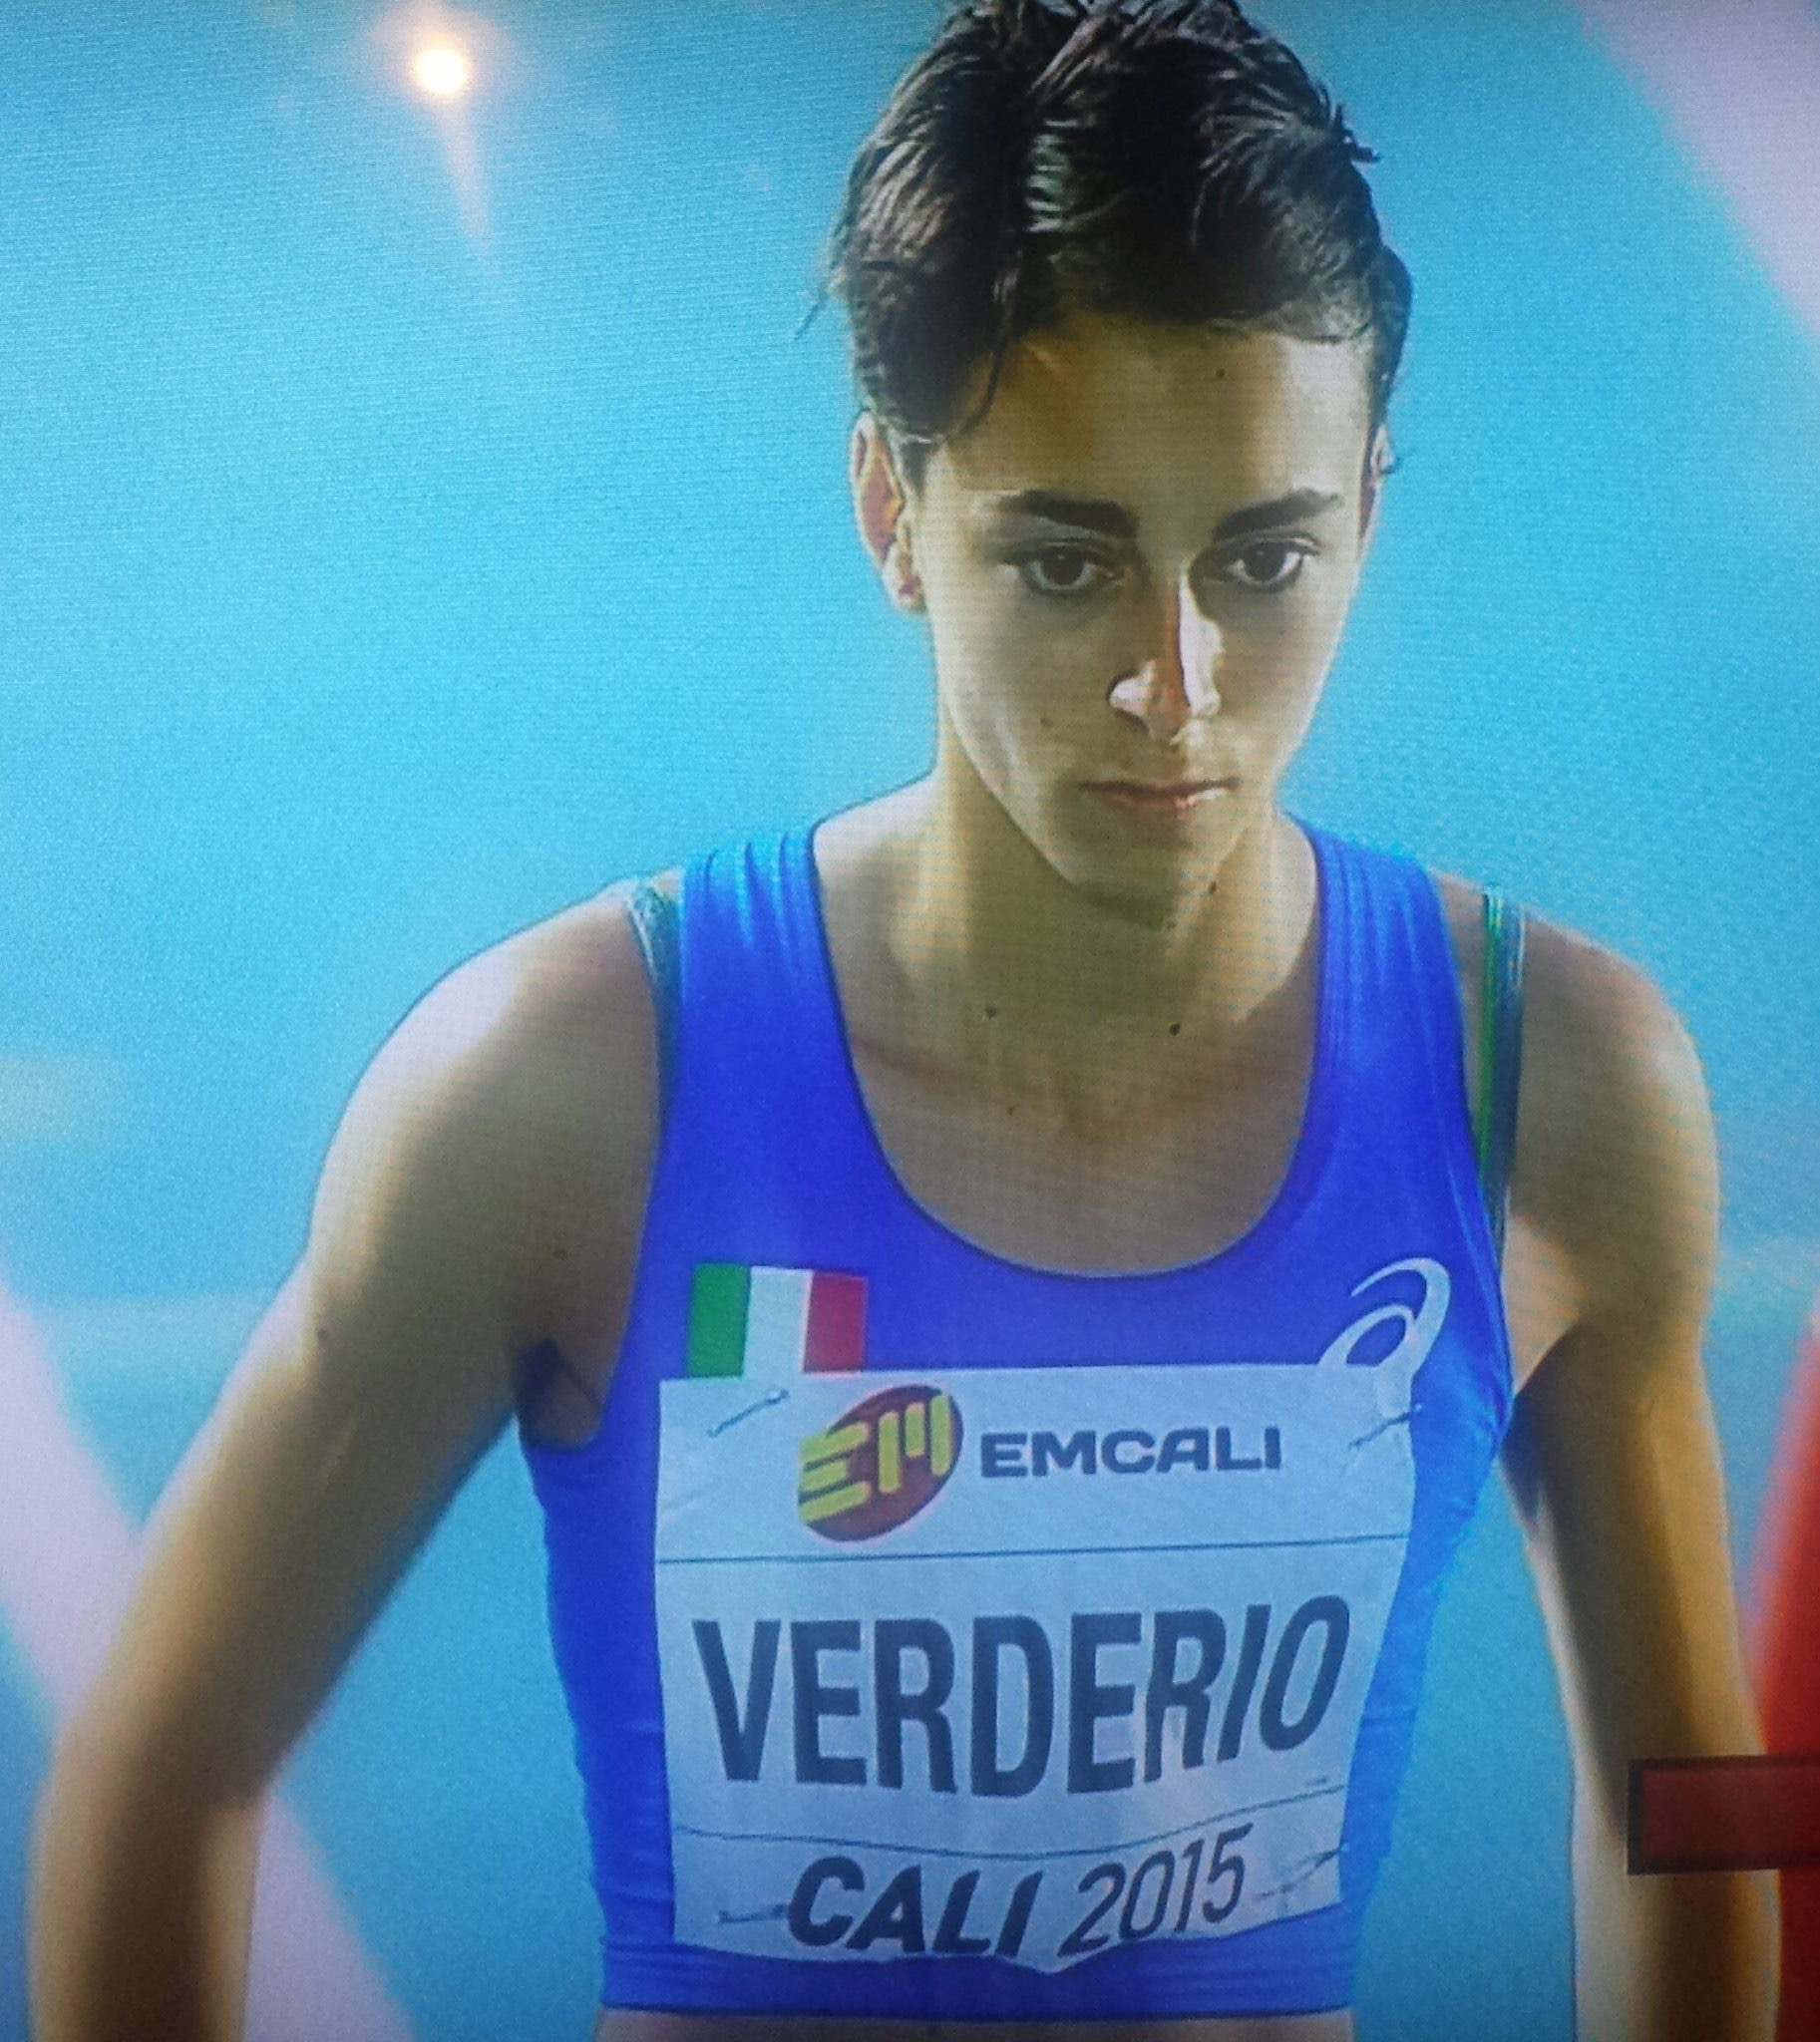 ILARIA VERDERIO  400Hs  57″75  record Italiano under 18